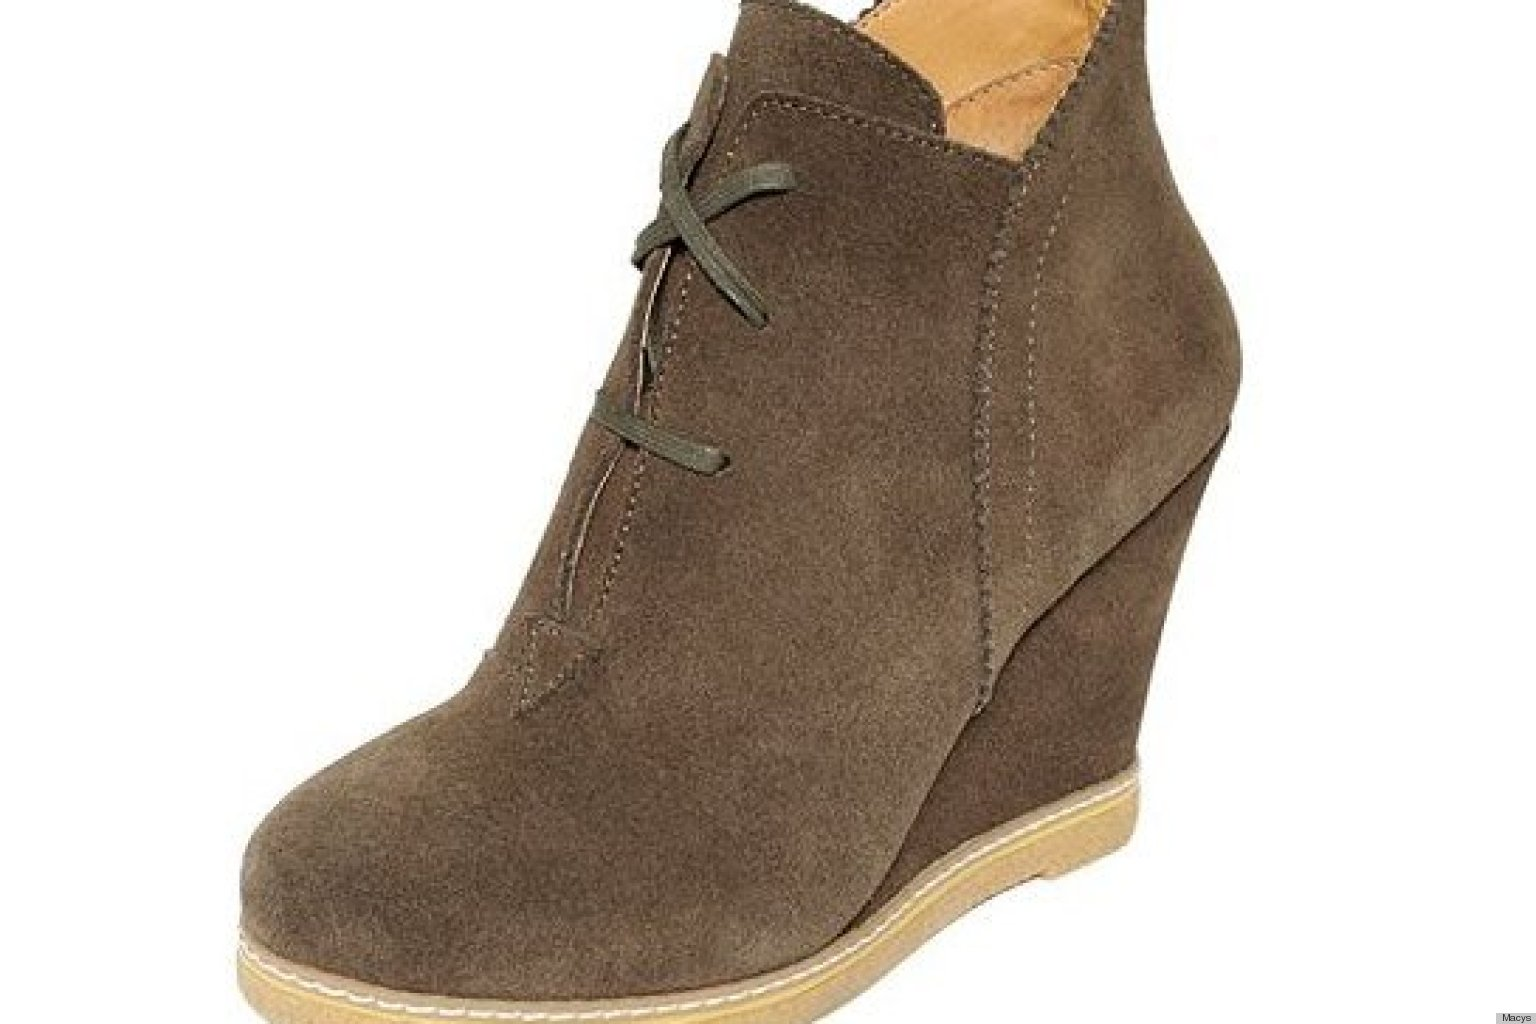 Cheap Fashion Boots For Girls The Best Boots For Your Shape